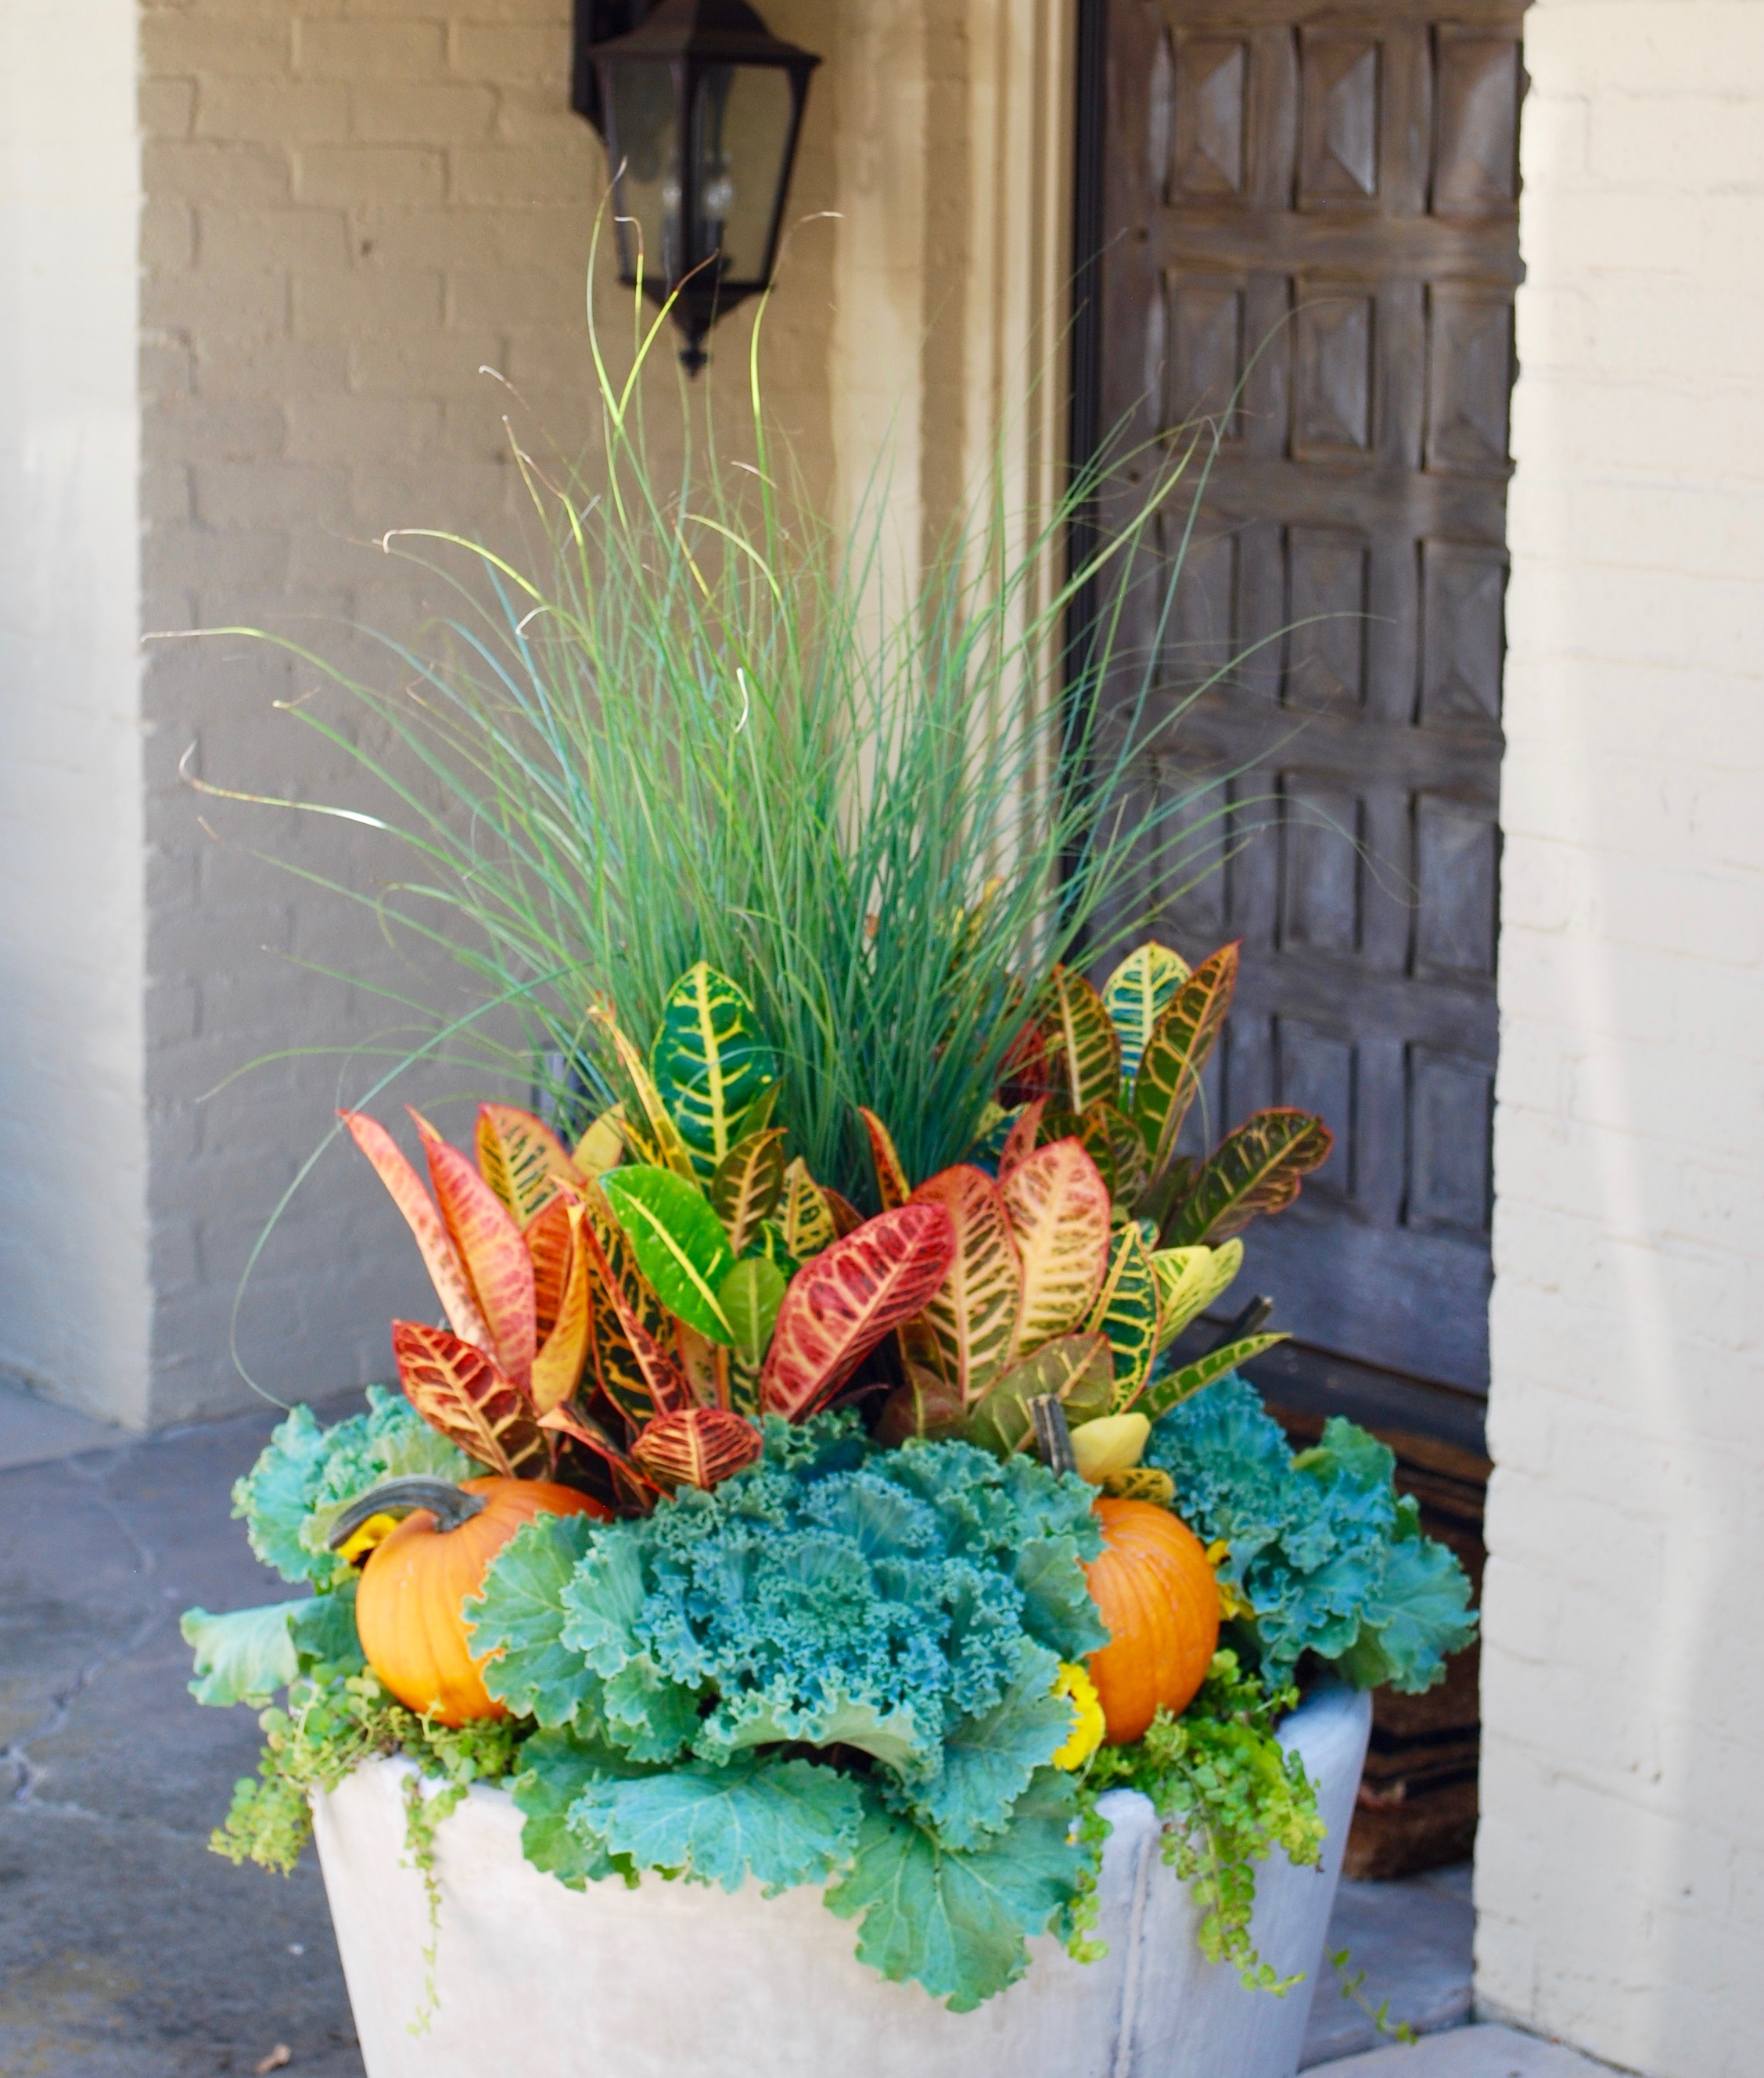 Traditional fall colors   You can't beat traditional fall colors in an outdoor planter. Our go to plants for this warm palette are grasses, crotons, yellow and orange pansies, green cabbage and moneywort. In this picture above we used a green grass as the thriller, but you could also use purple fountain grass if you want to bring a burgundy color into the mix. Our fillers are yellow pansies, crotons, green cabbage and orange pumpkins. Chartreuse moneywort rounds out the arrangement as the spiller.